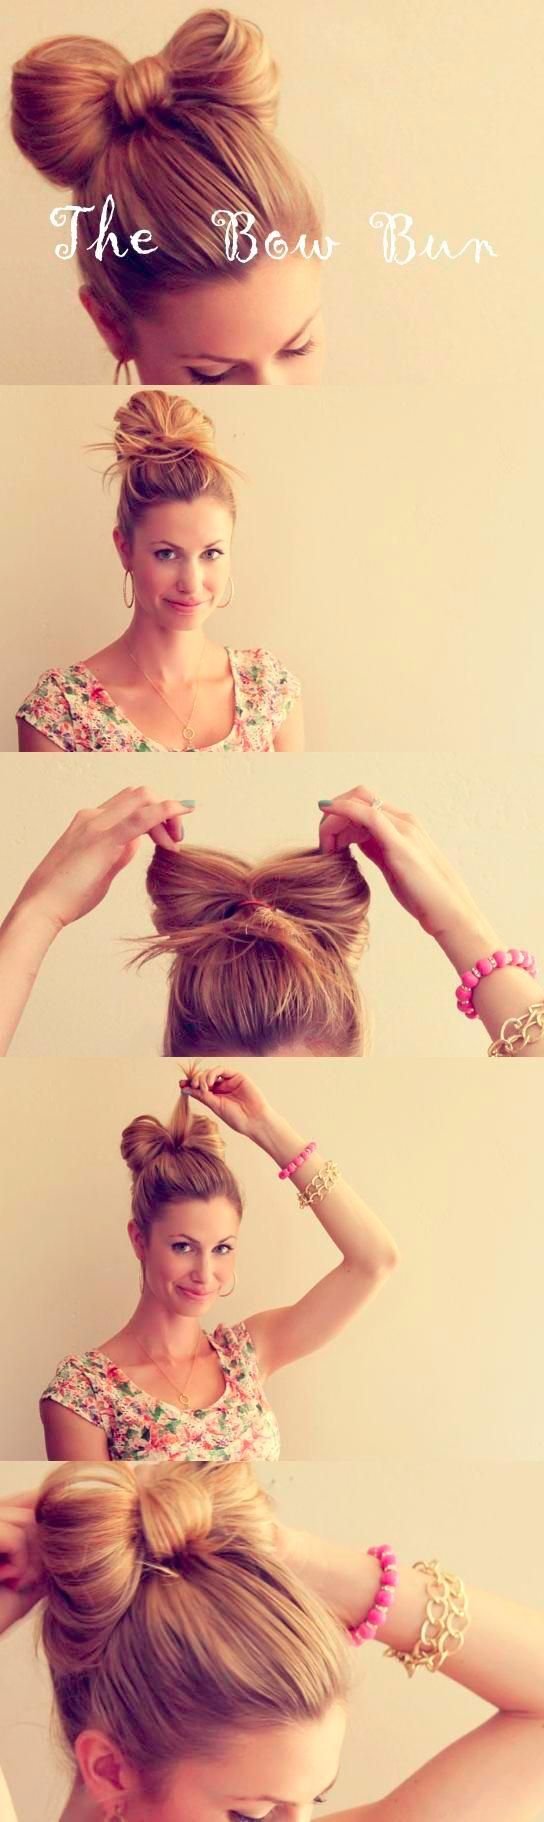 DIY Braided Hair: Hair tips and ideas: Pretty Friday